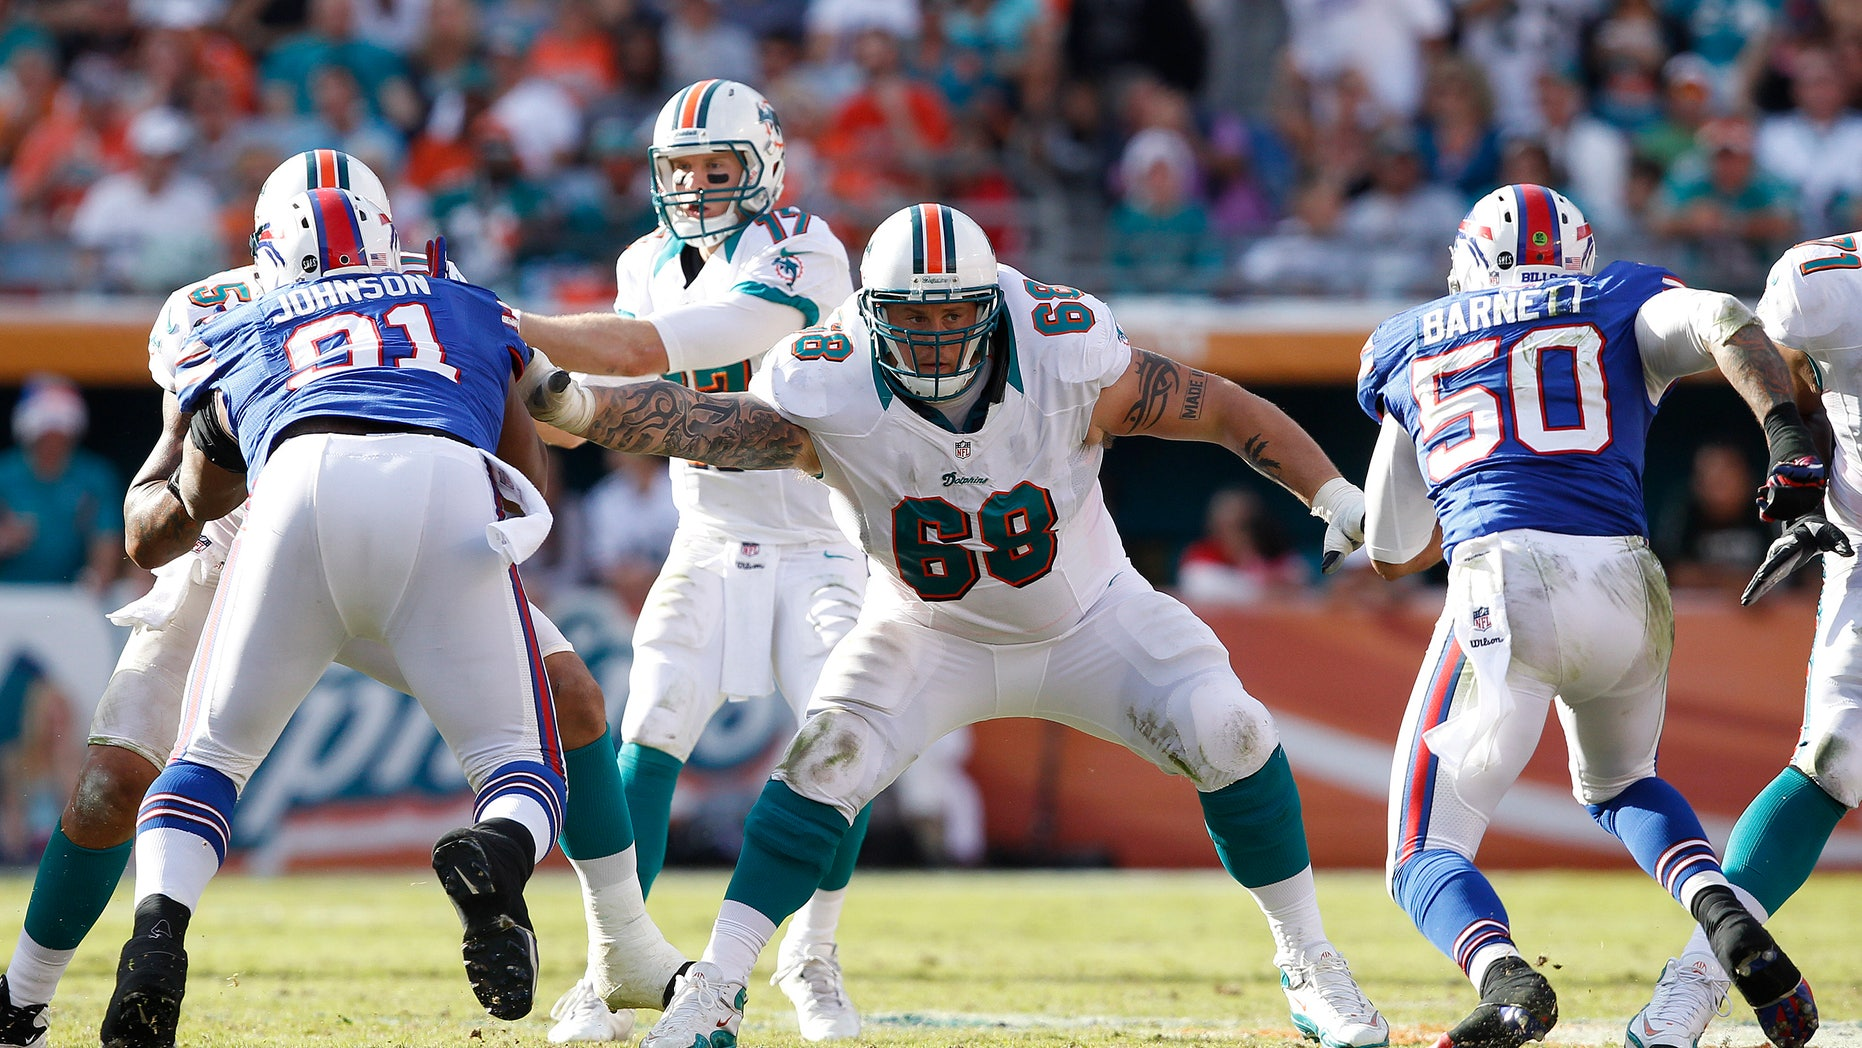 MIAMI GARDENS, FL - DECEMBER 23: Richie Incognito #68 of the Miami Dolphins defends against the Buffalo Bills on December 23, 2012 at Sun Life Stadium in Miami Gardens, Florida. The Dolphins defeated the Bills 24-10. (Photo by Joel Auerbach/Getty Images)